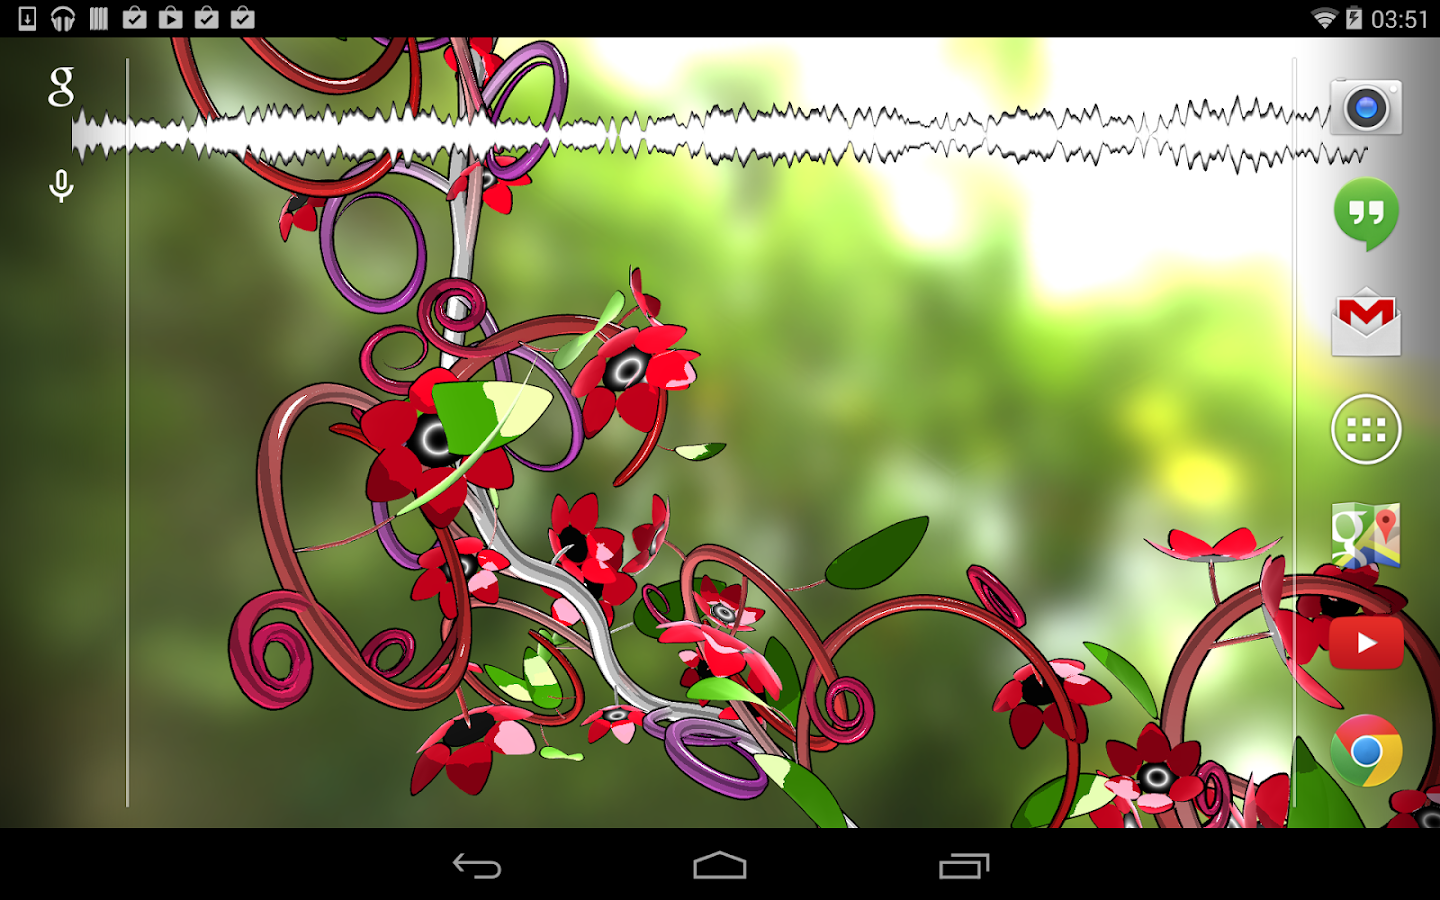 Jungle of Flowers 3D LWP - screenshot